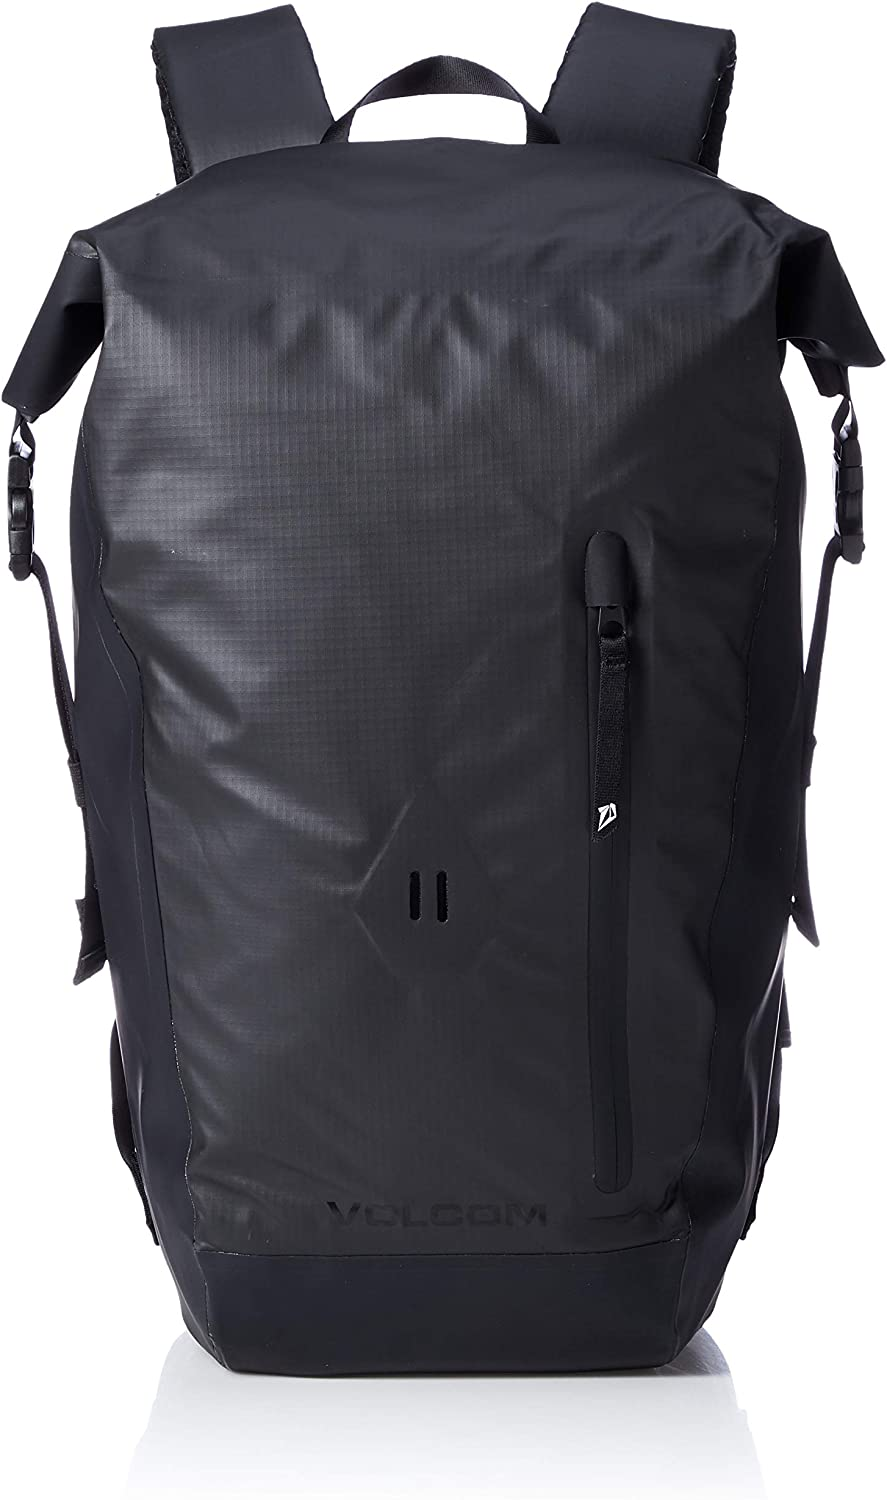 Volcom Men's Mod Tech Keep Dry Cooler Backpack, black, One Size Fits All